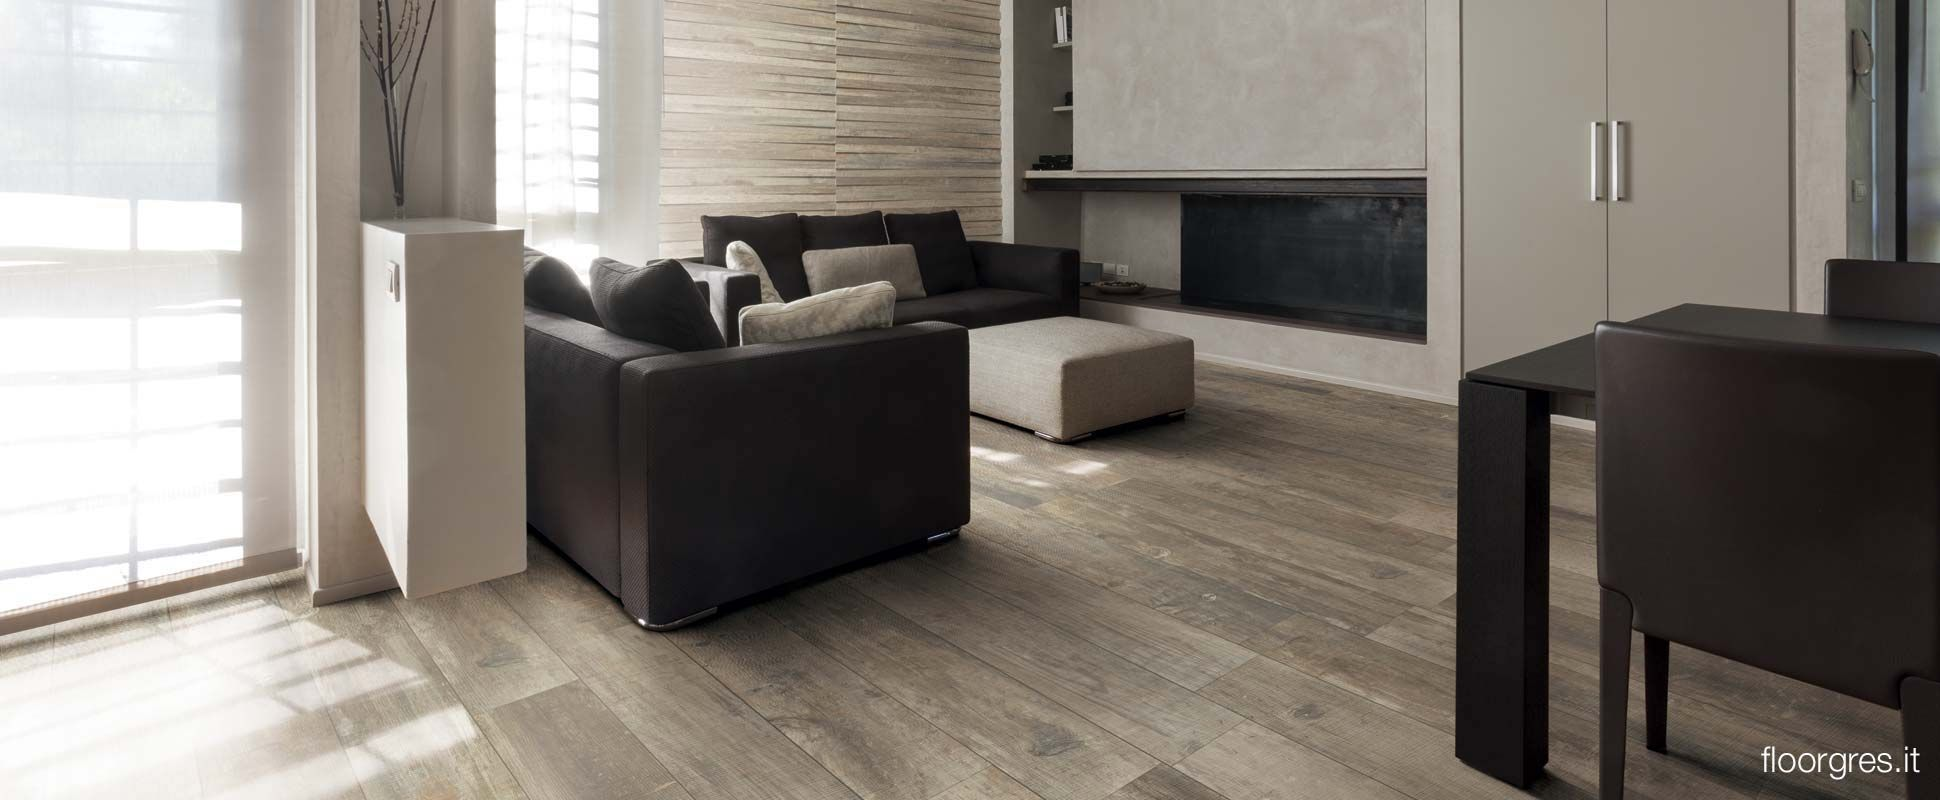 Styletch by floor gres fine porcelain stoneware floor grestile styletch by floor gres fine porcelain stoneware floor grestile porcelain stone dailygadgetfo Image collections